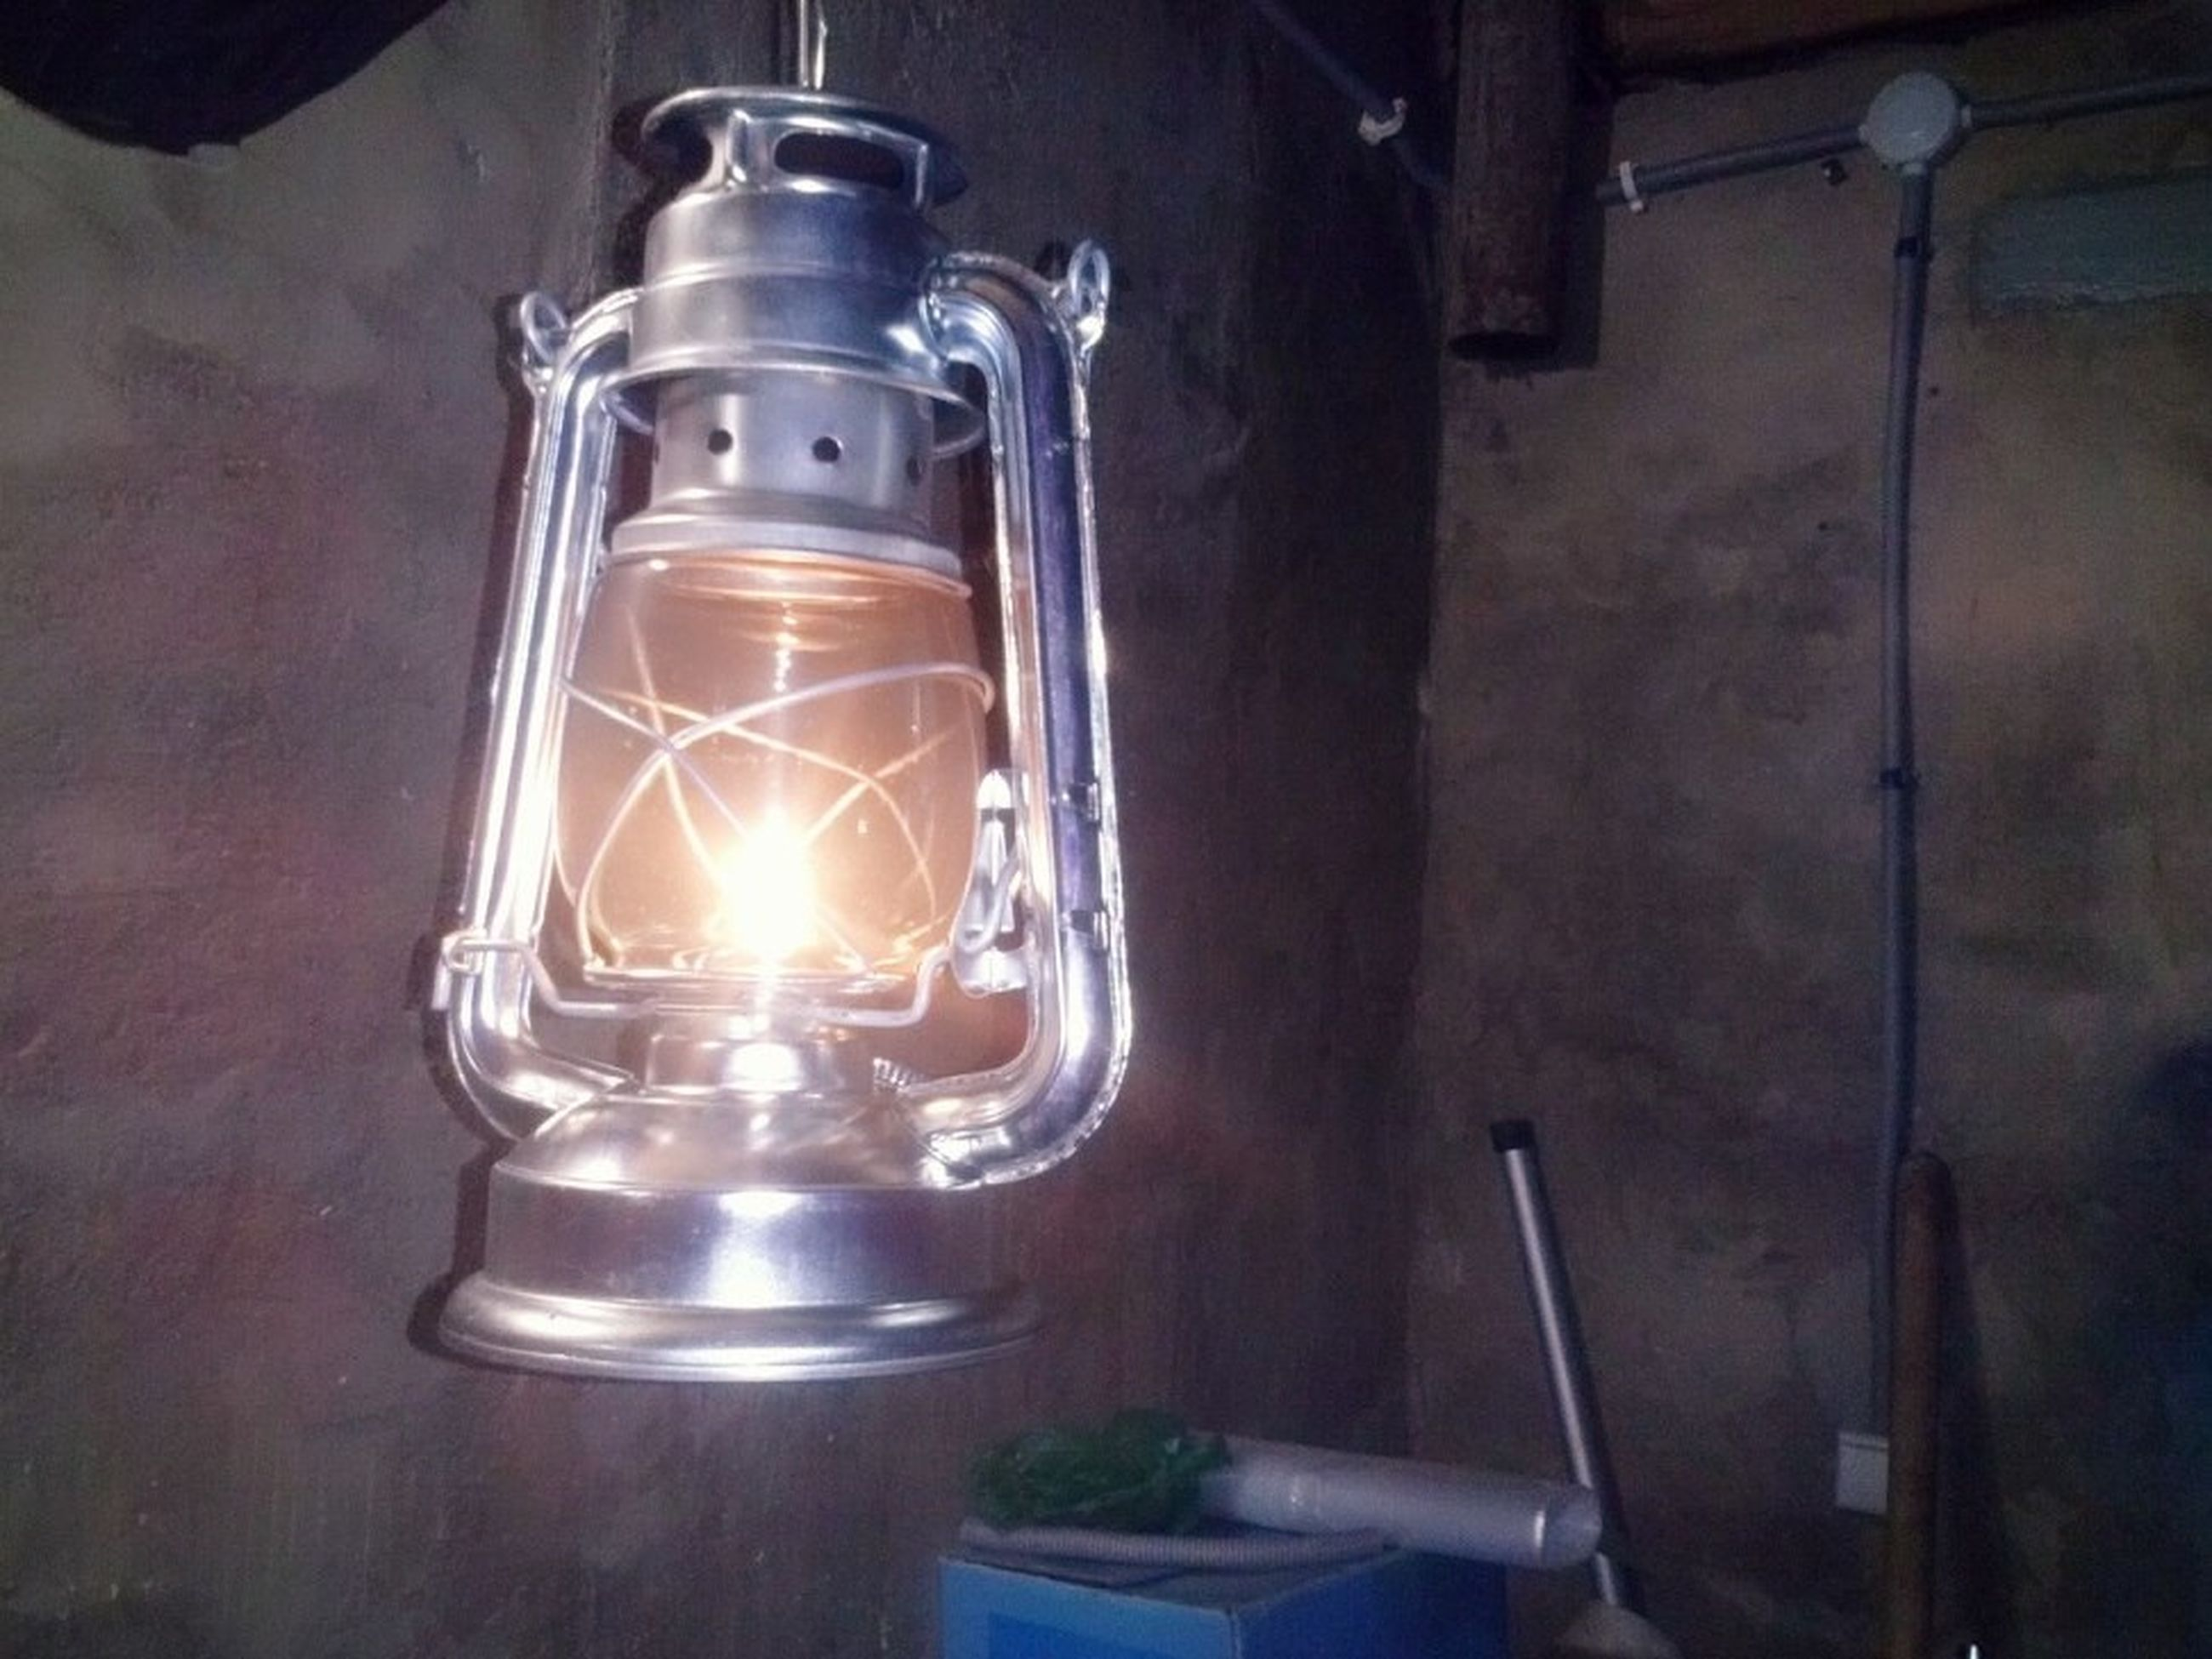 indoors, close-up, electricity, metal, still life, lighting equipment, heat - temperature, burning, flame, illuminated, light bulb, fuel and power generation, old-fashioned, table, technology, glowing, no people, lit, glass - material, home interior